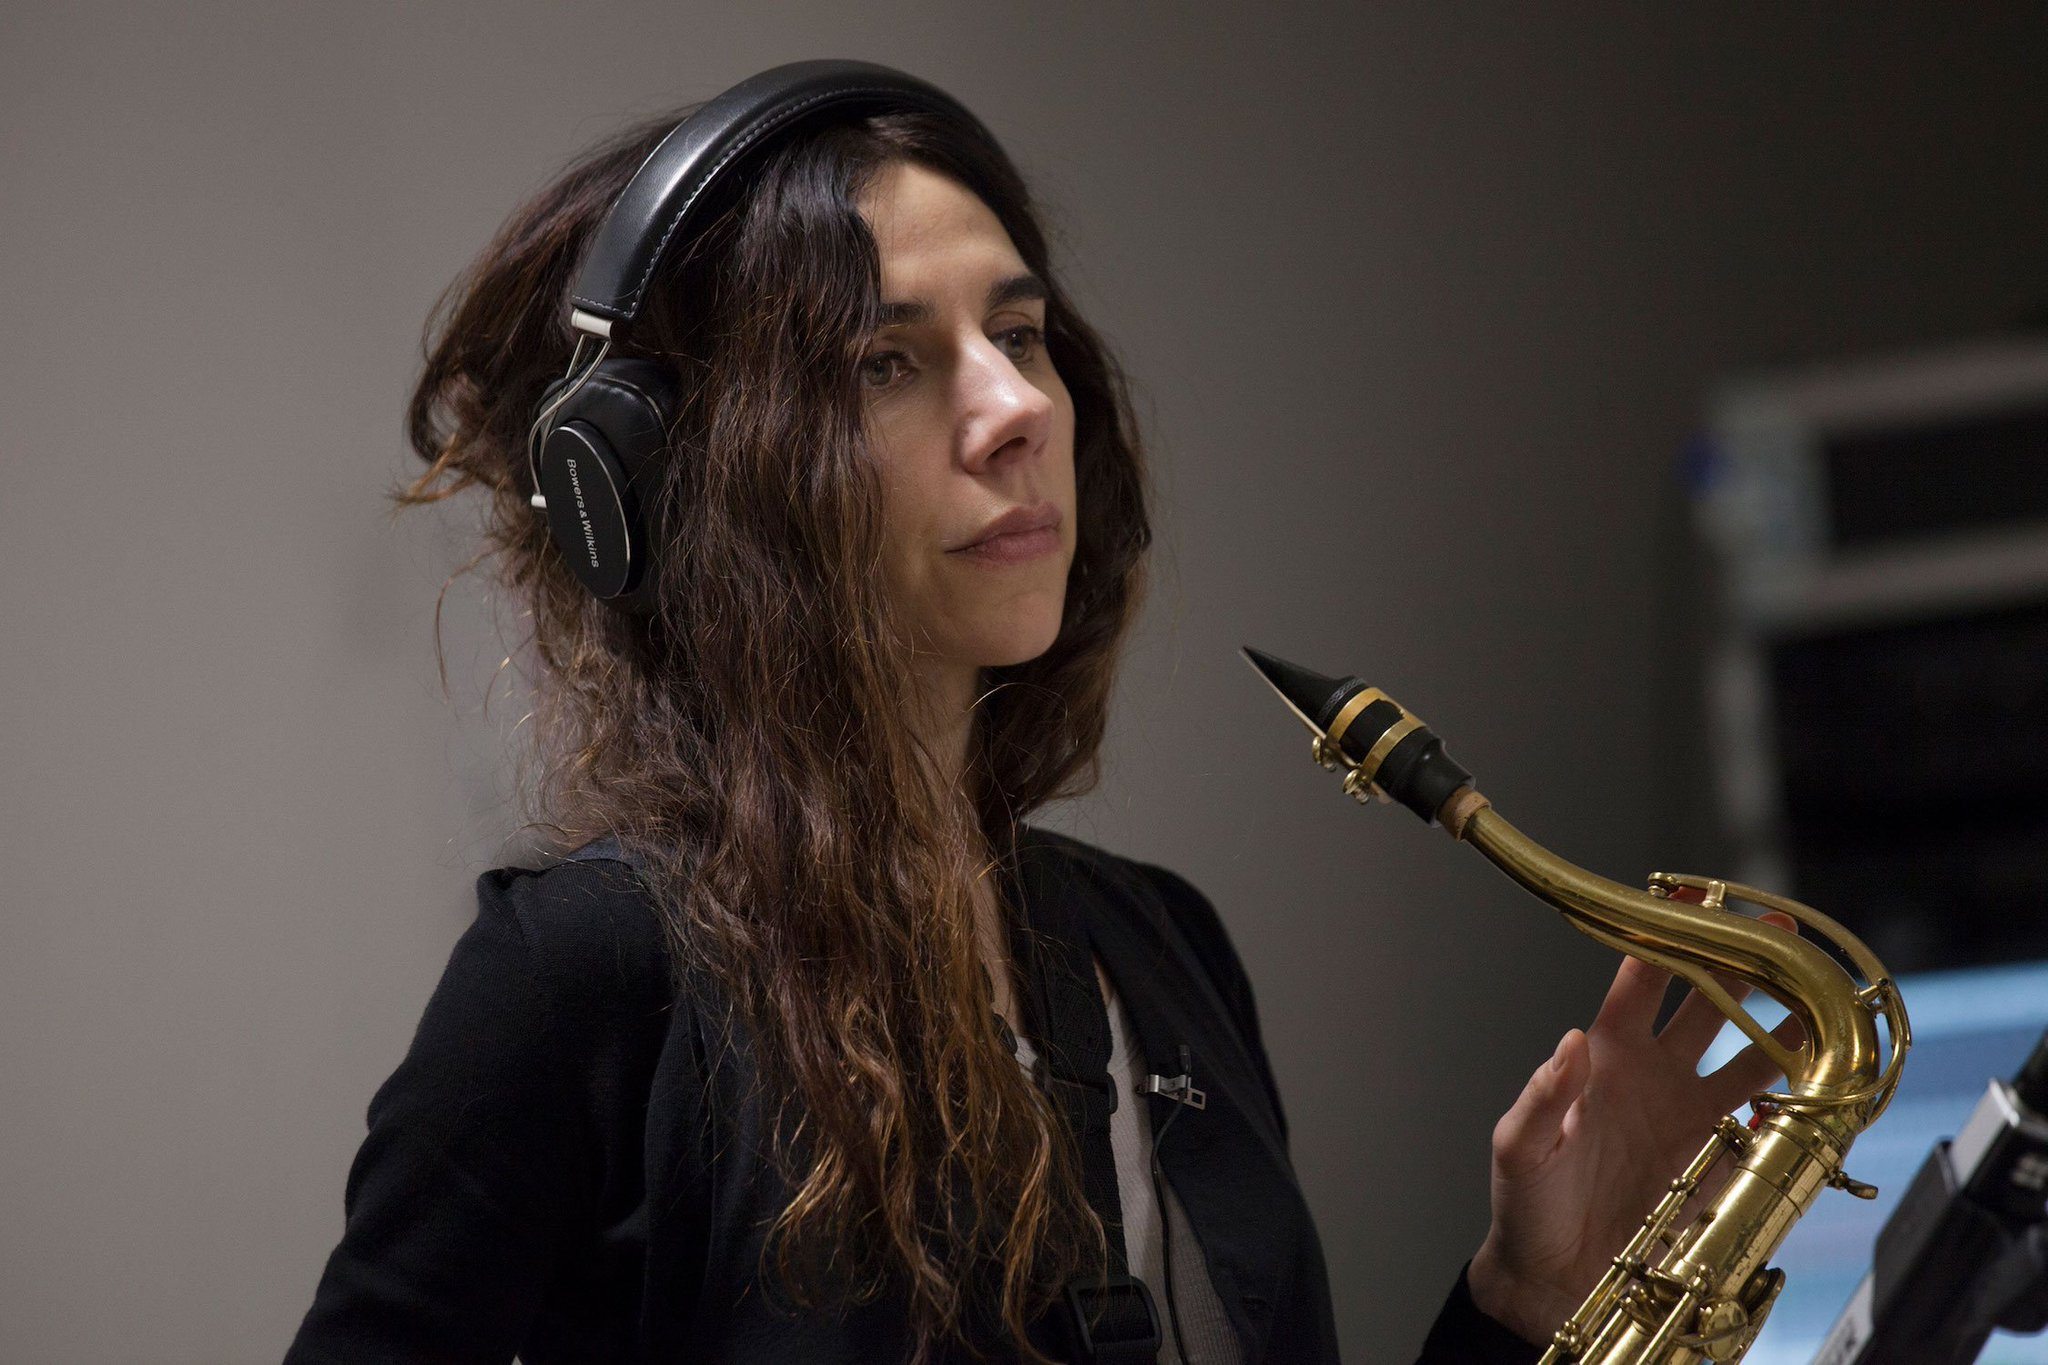 Happy birthday to you, querida PJ Harvey. Sigues siendo una diosa a tus cincuenta.